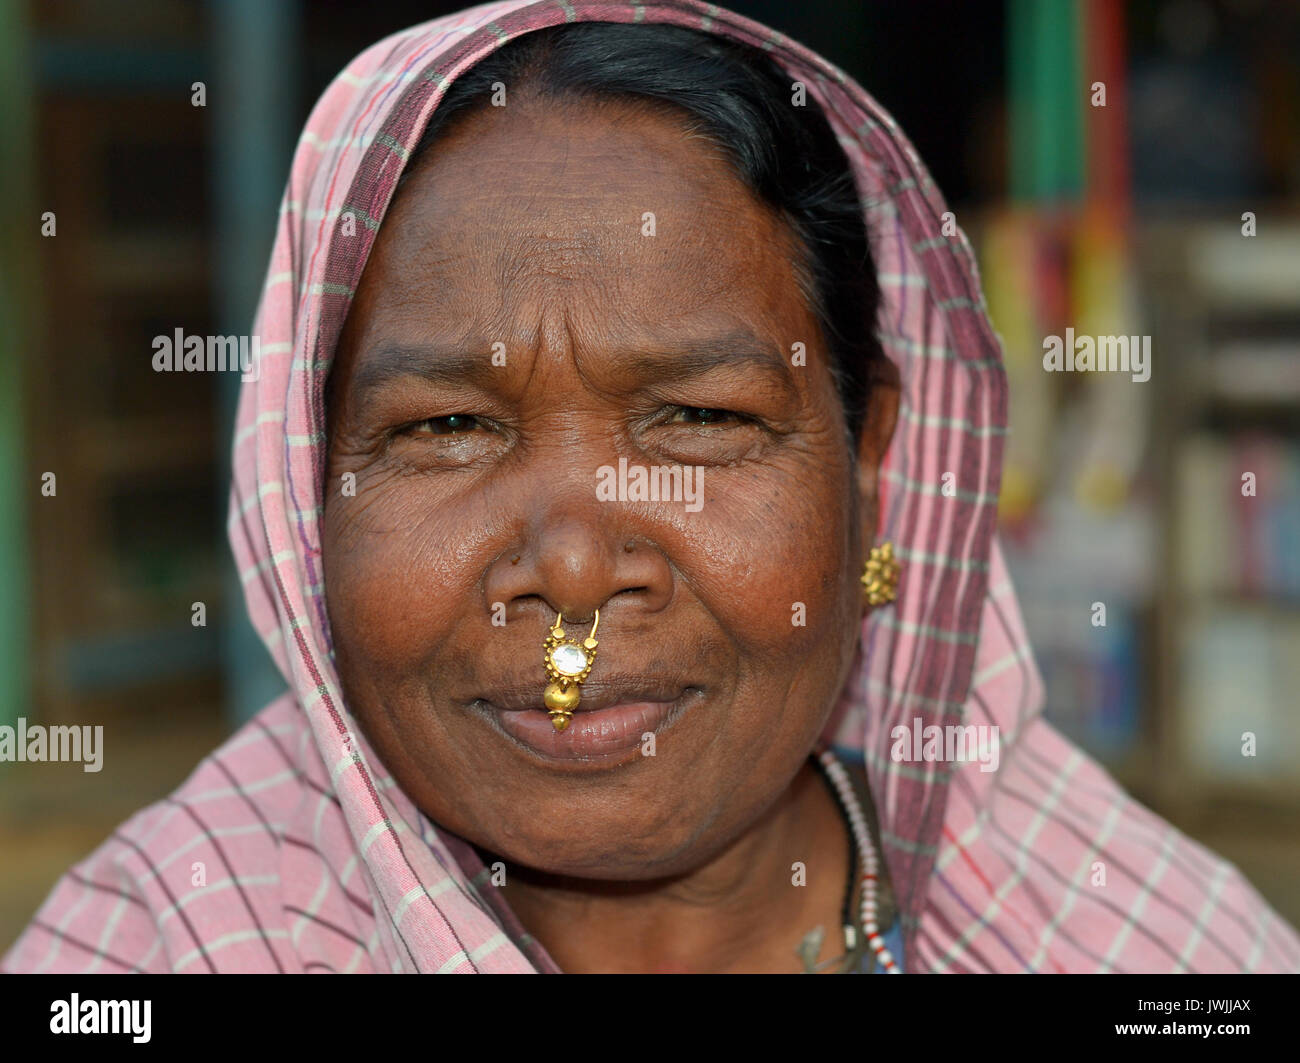 Closeup street portrait (outdoor headshot, seven-eighths view) of an overweight, mature Indian Adivasi market woman Stock Photo